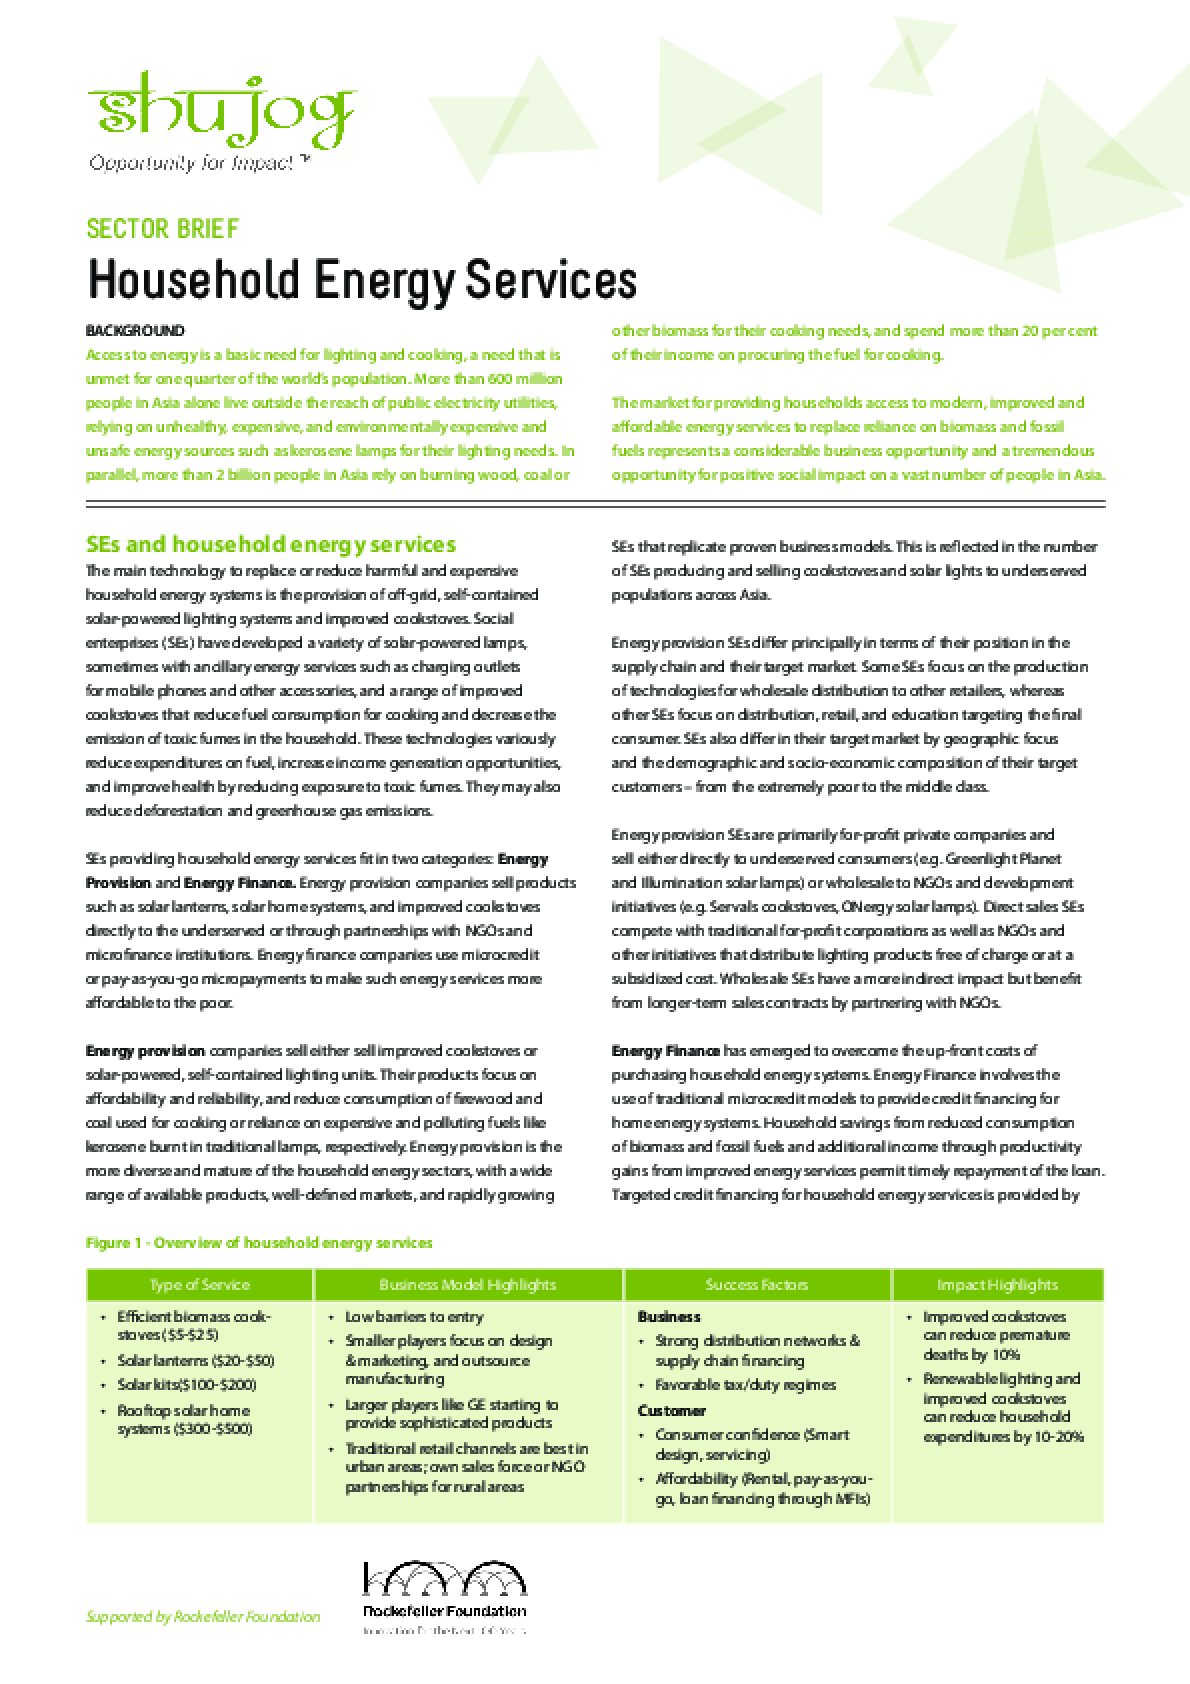 Household Energy Sector Brief